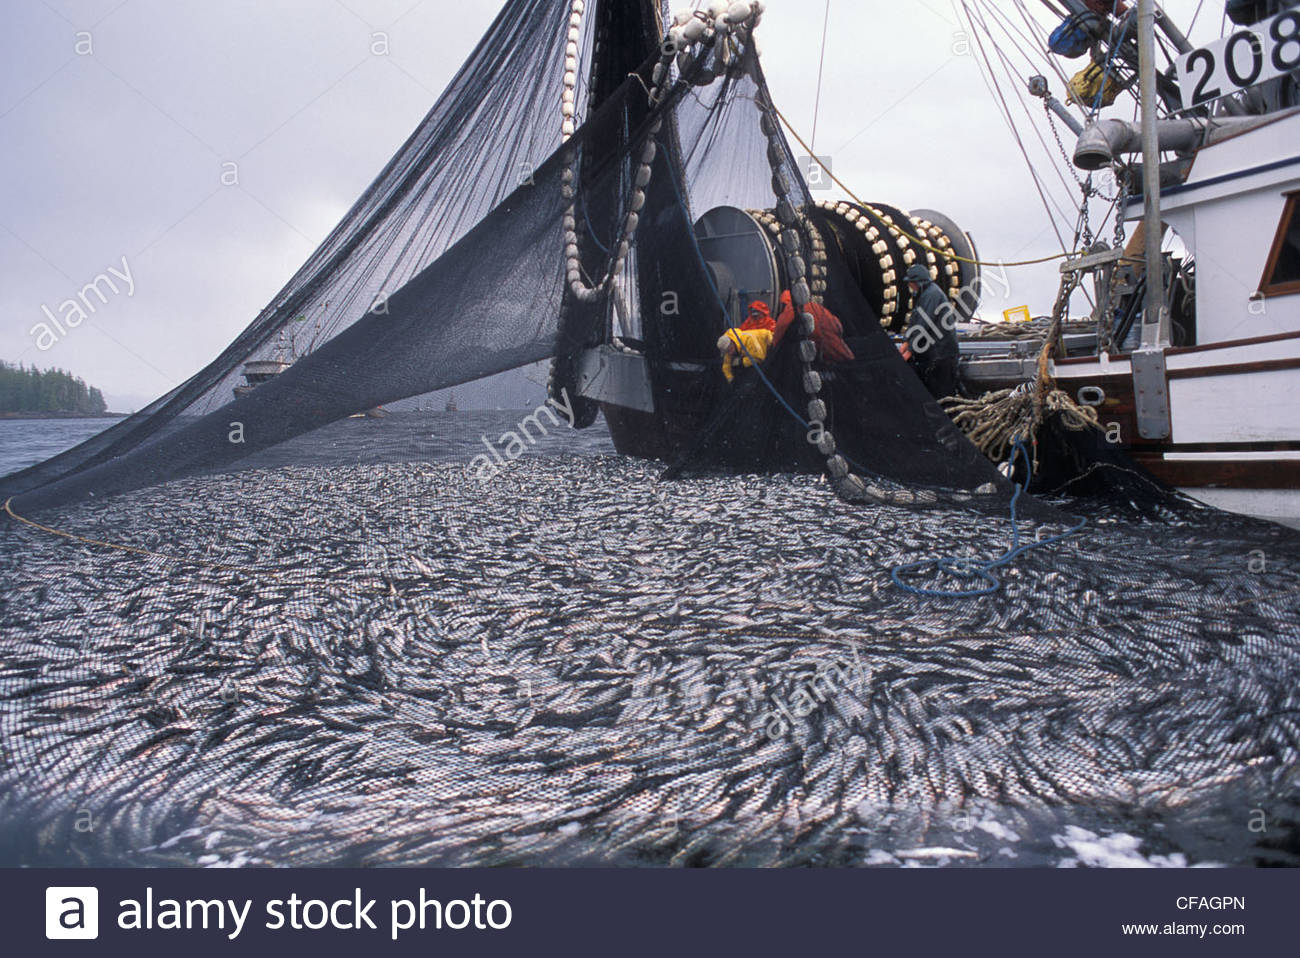 commercial fishing boat pulling up net full of herring